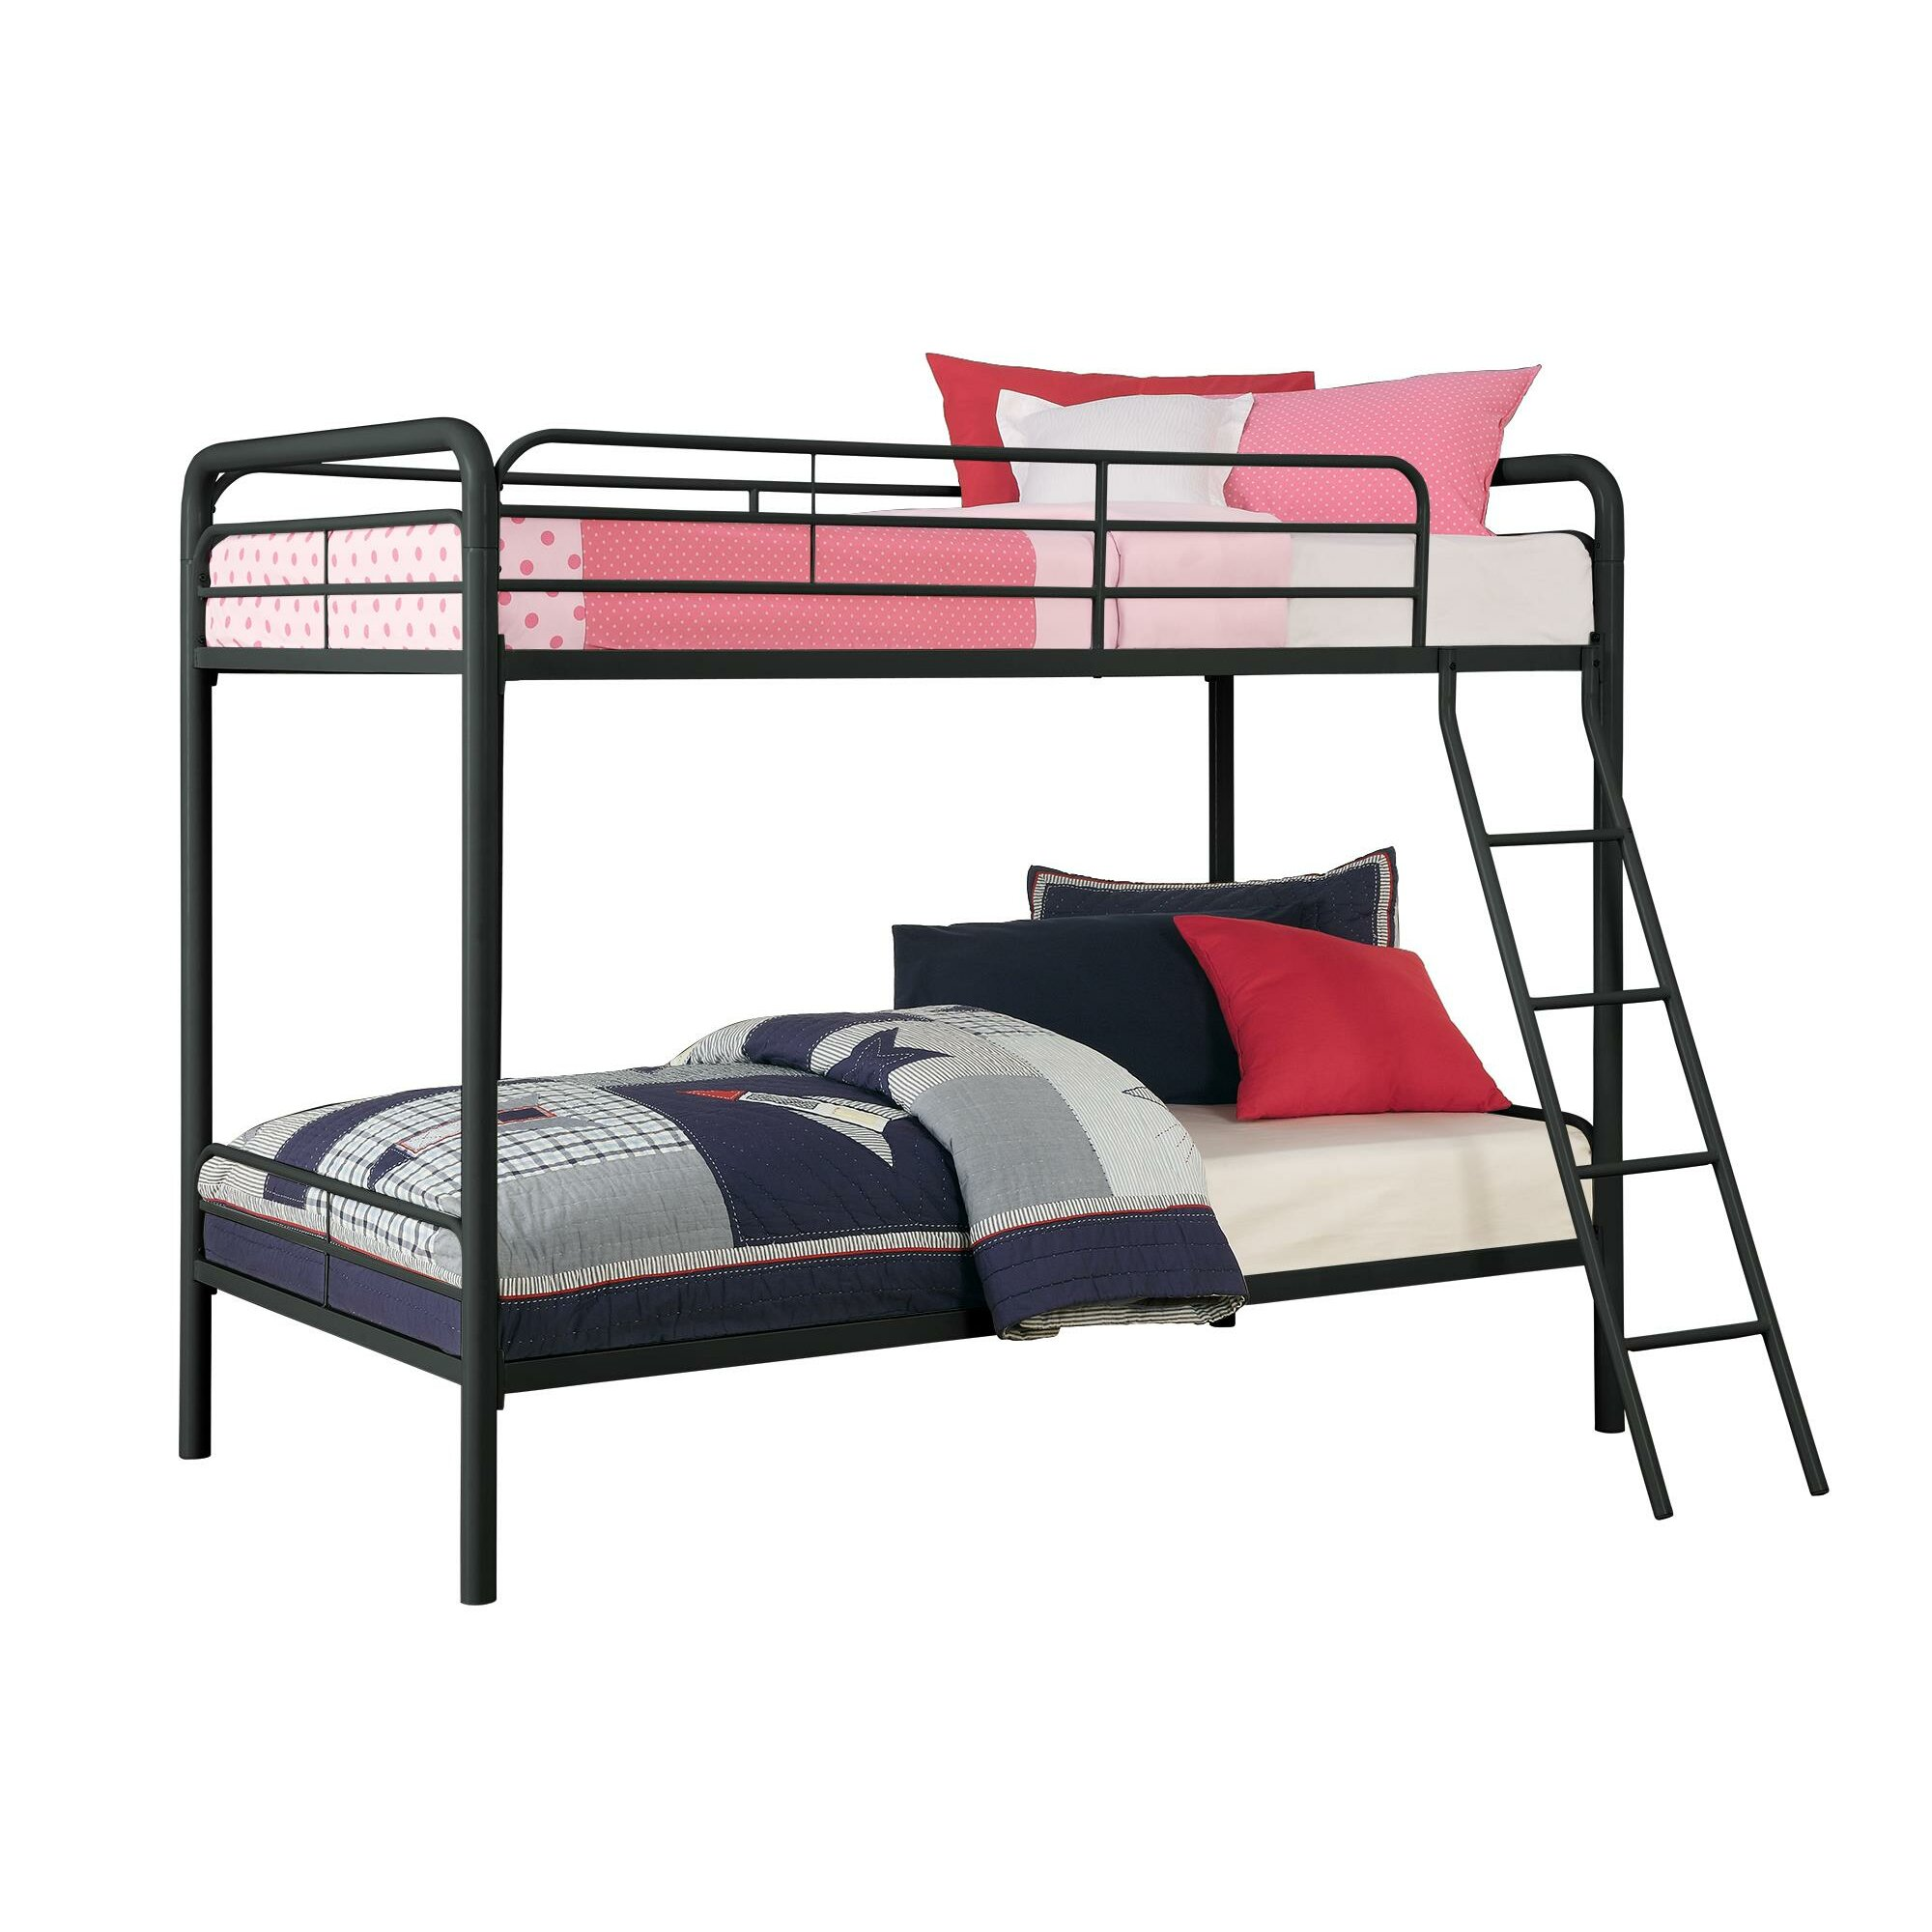 Dhp twin bunk bed reviews wayfair - Bunk cot beds for twins ...